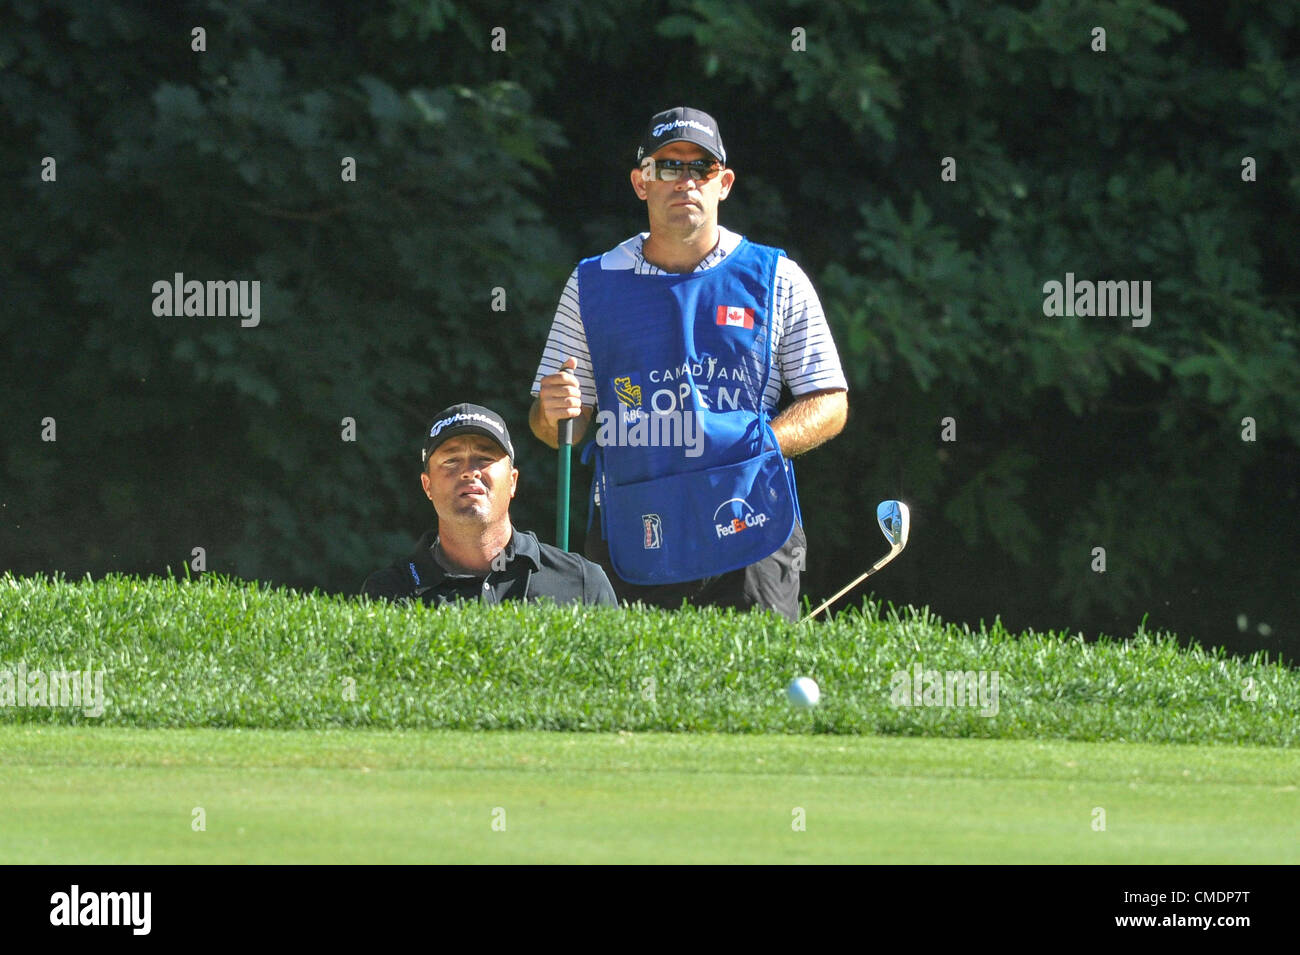 25.07.2012. Ontario, Canada.  Ryan Palmer watches his ball after hitting from the bunker during the RBC Canadian - Stock Image